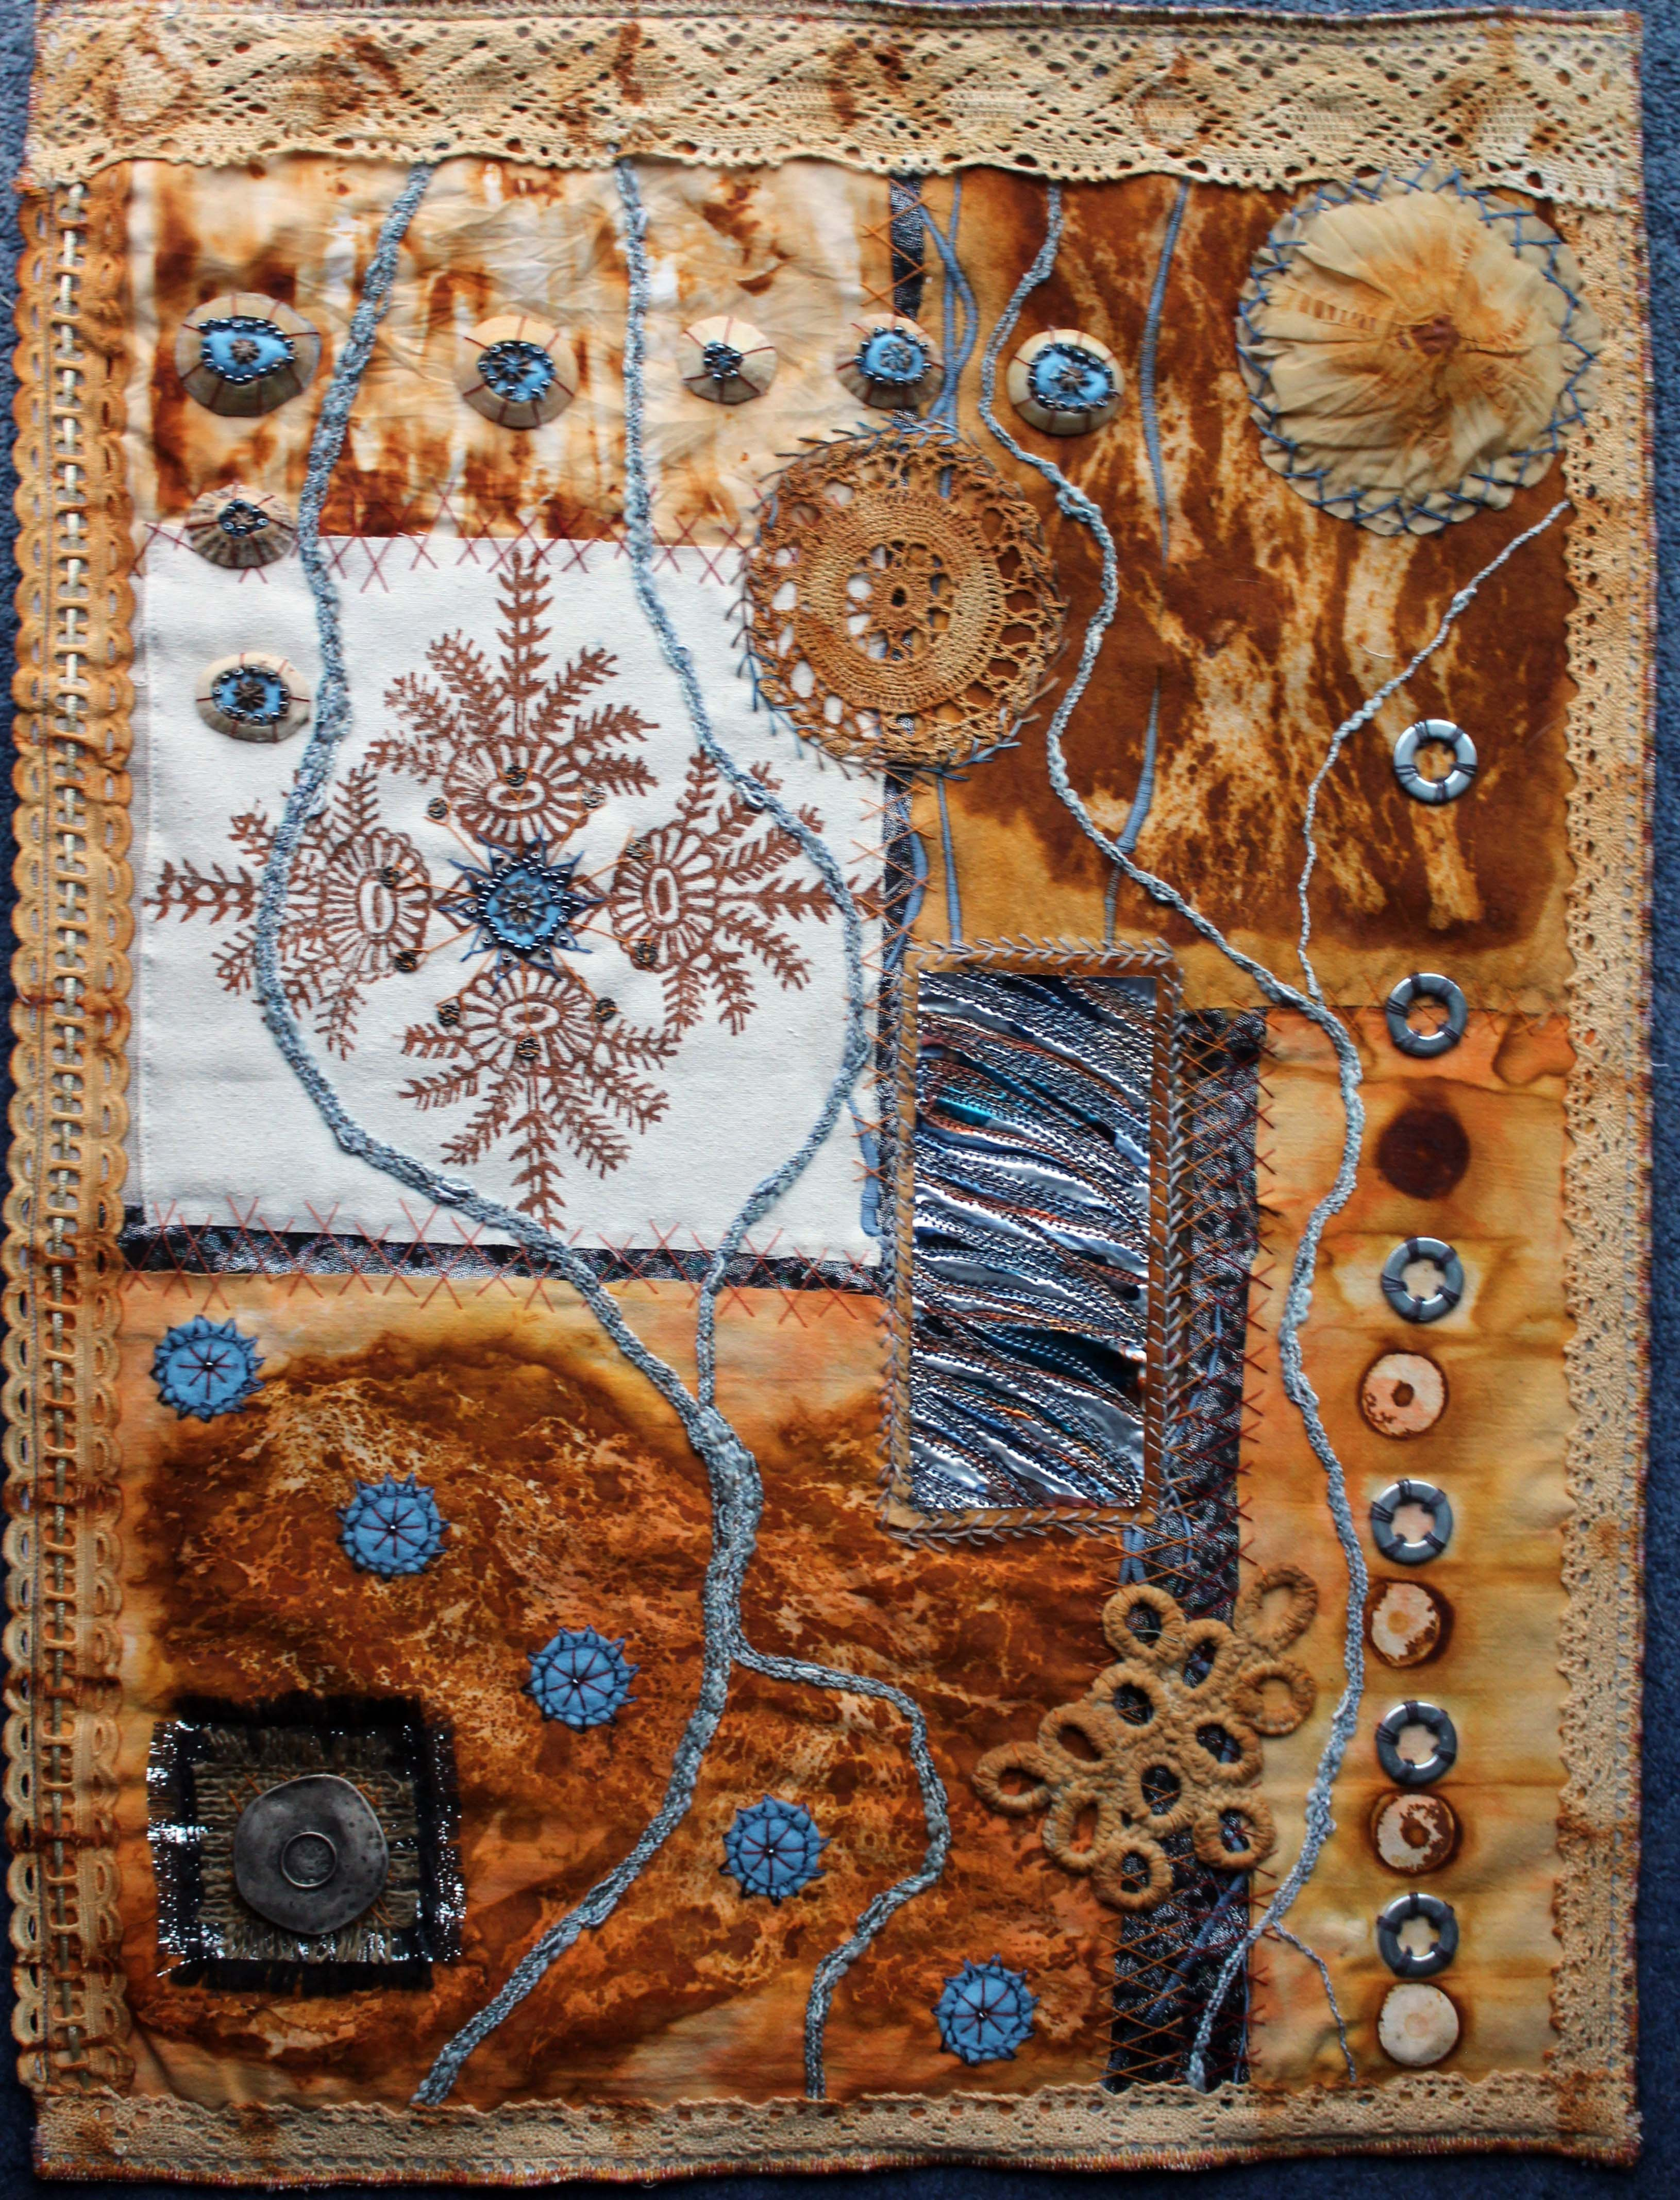 RUST 1 by Sandra Kendal, North Lonsdale branch, rust dyed fabric embellished with hand and machine embroidery